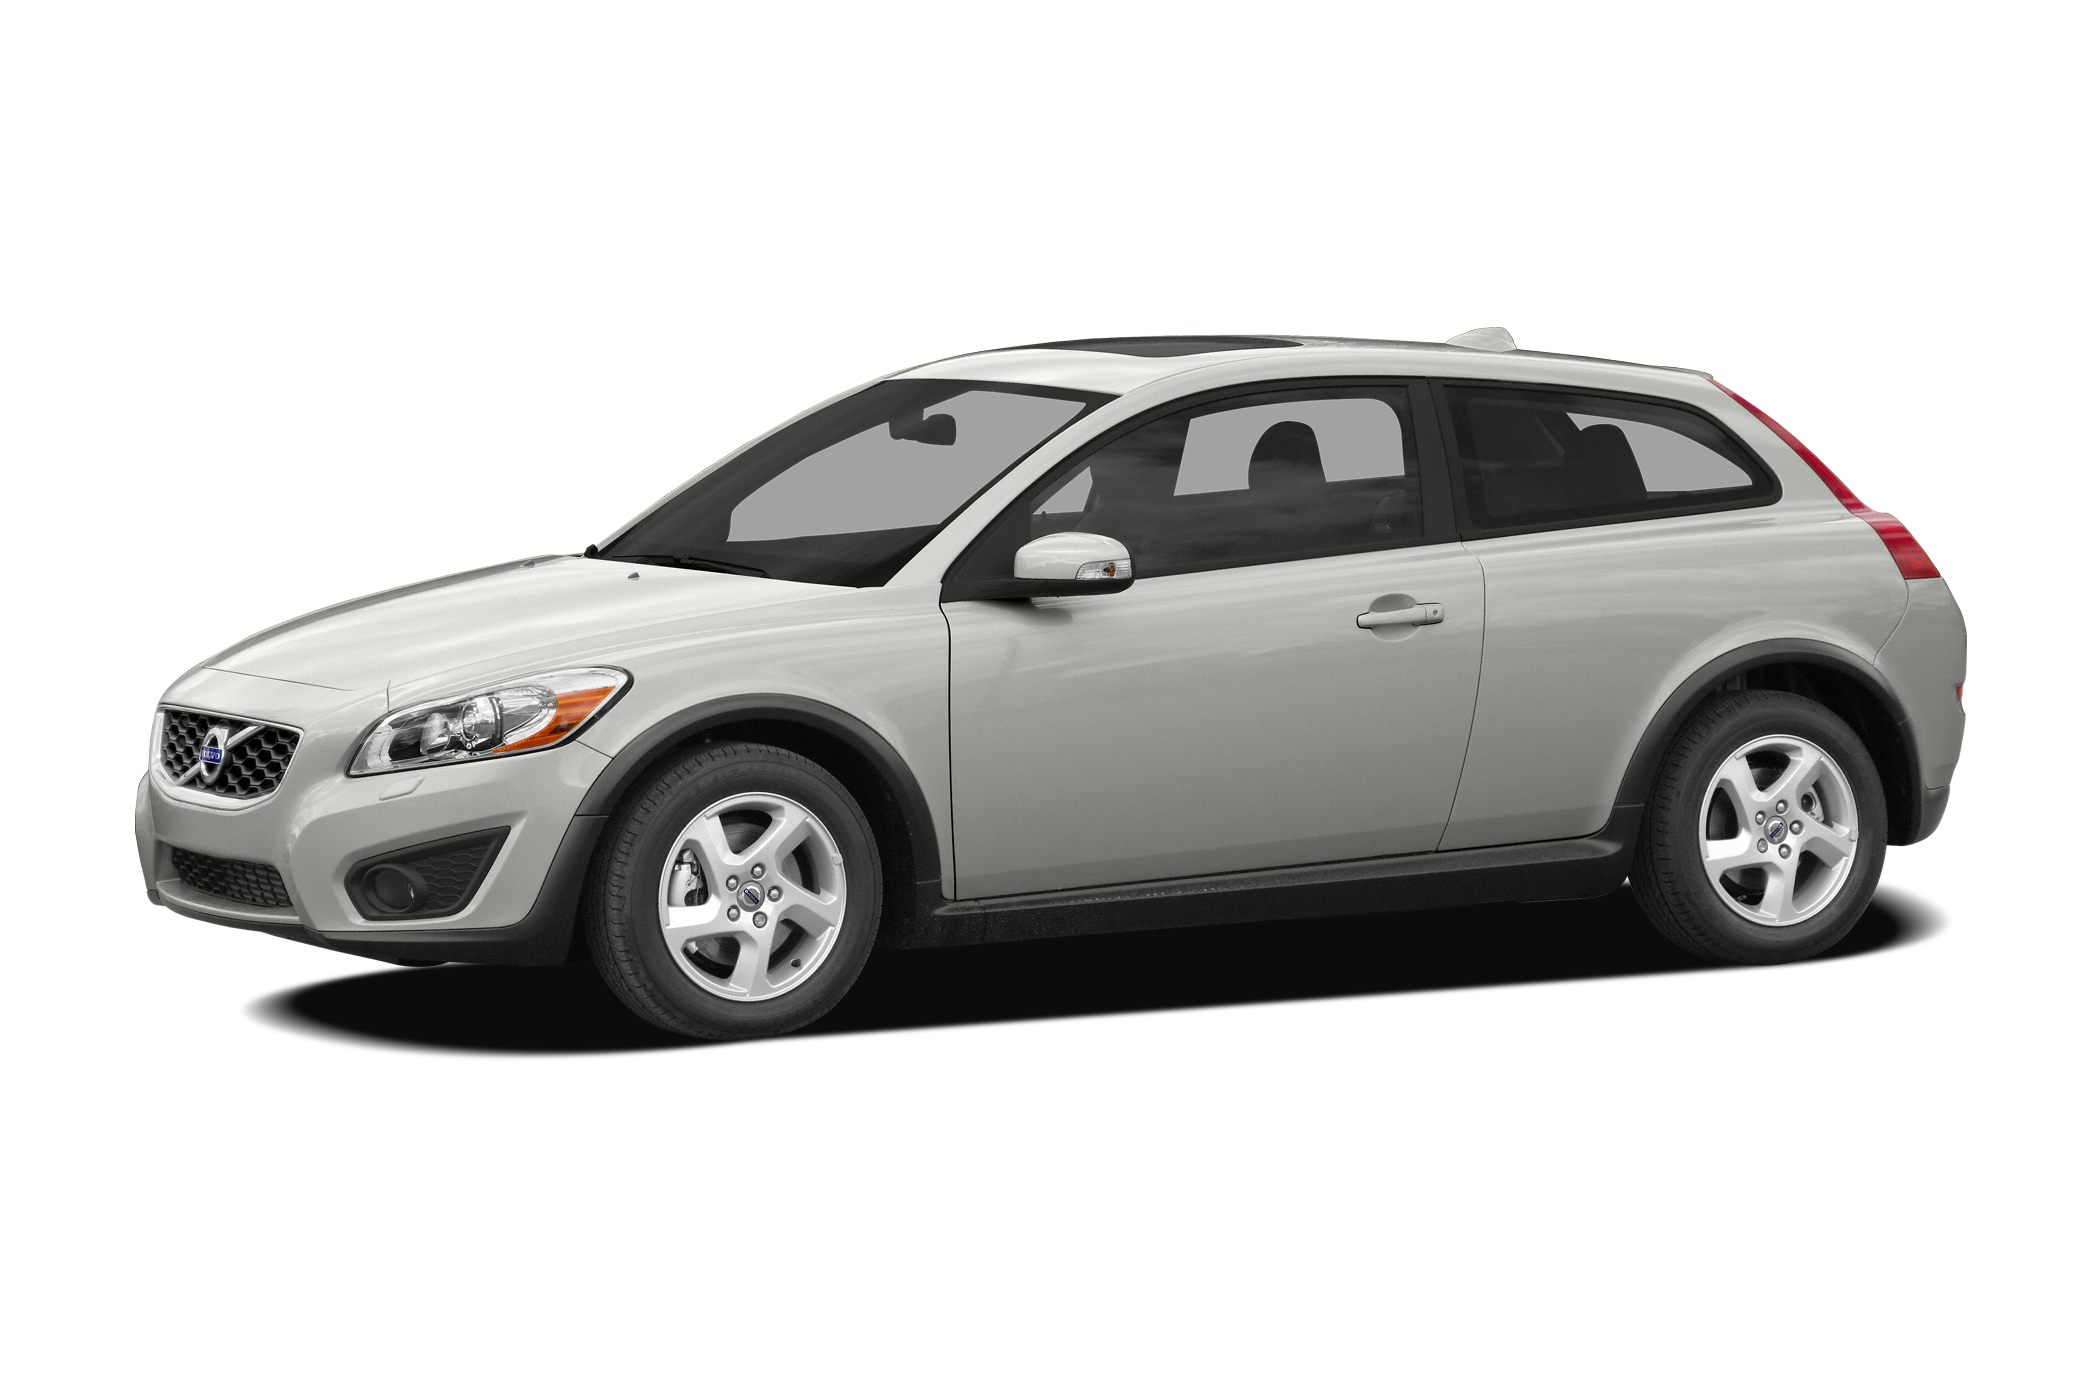 CAC10VOC201B1101 Great Description About Volvo C30 R Design with Interesting Gallery Cars Review